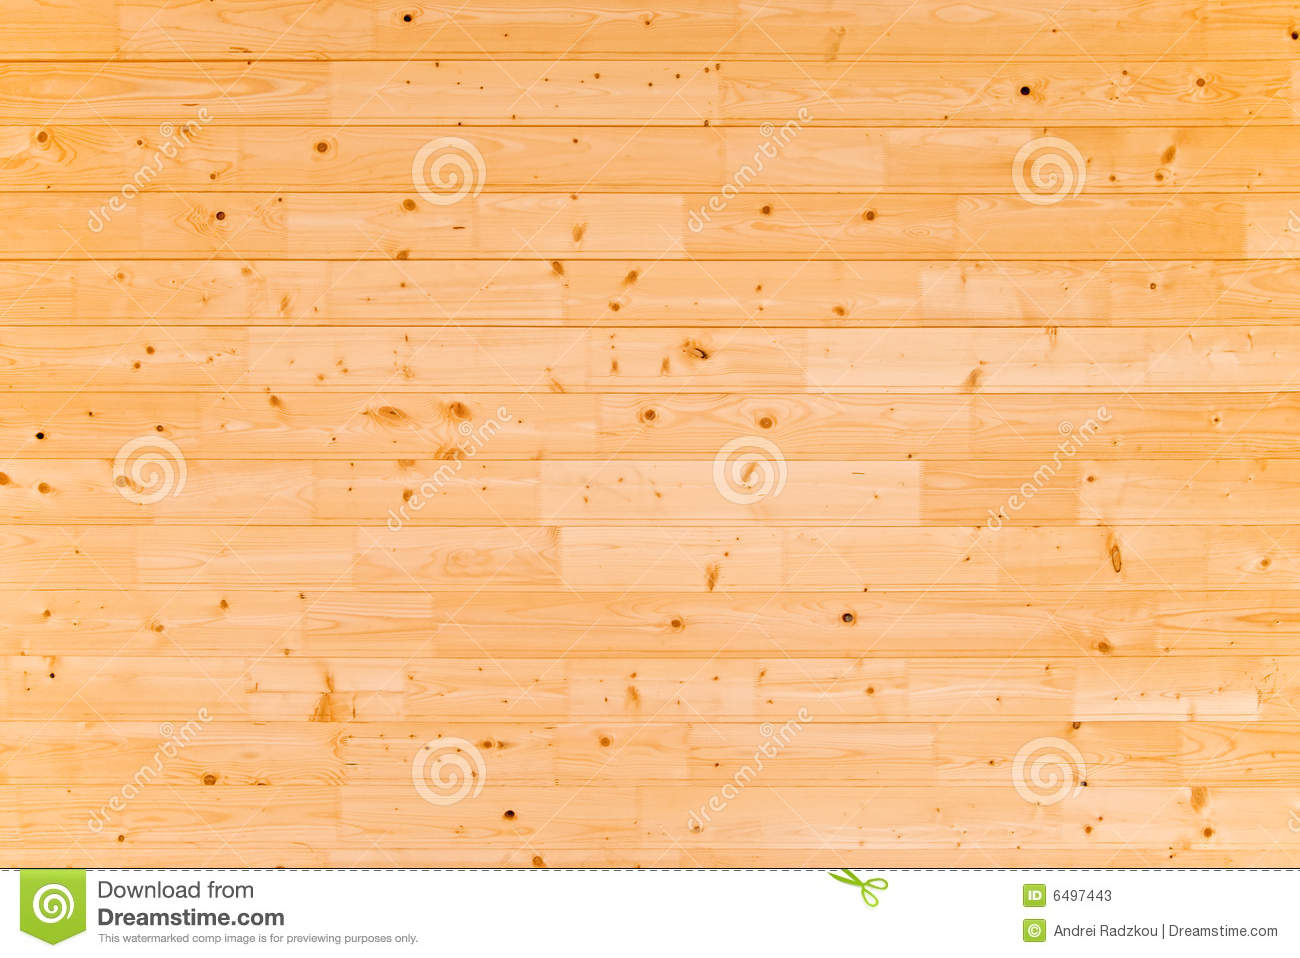 The wall of pine planks.